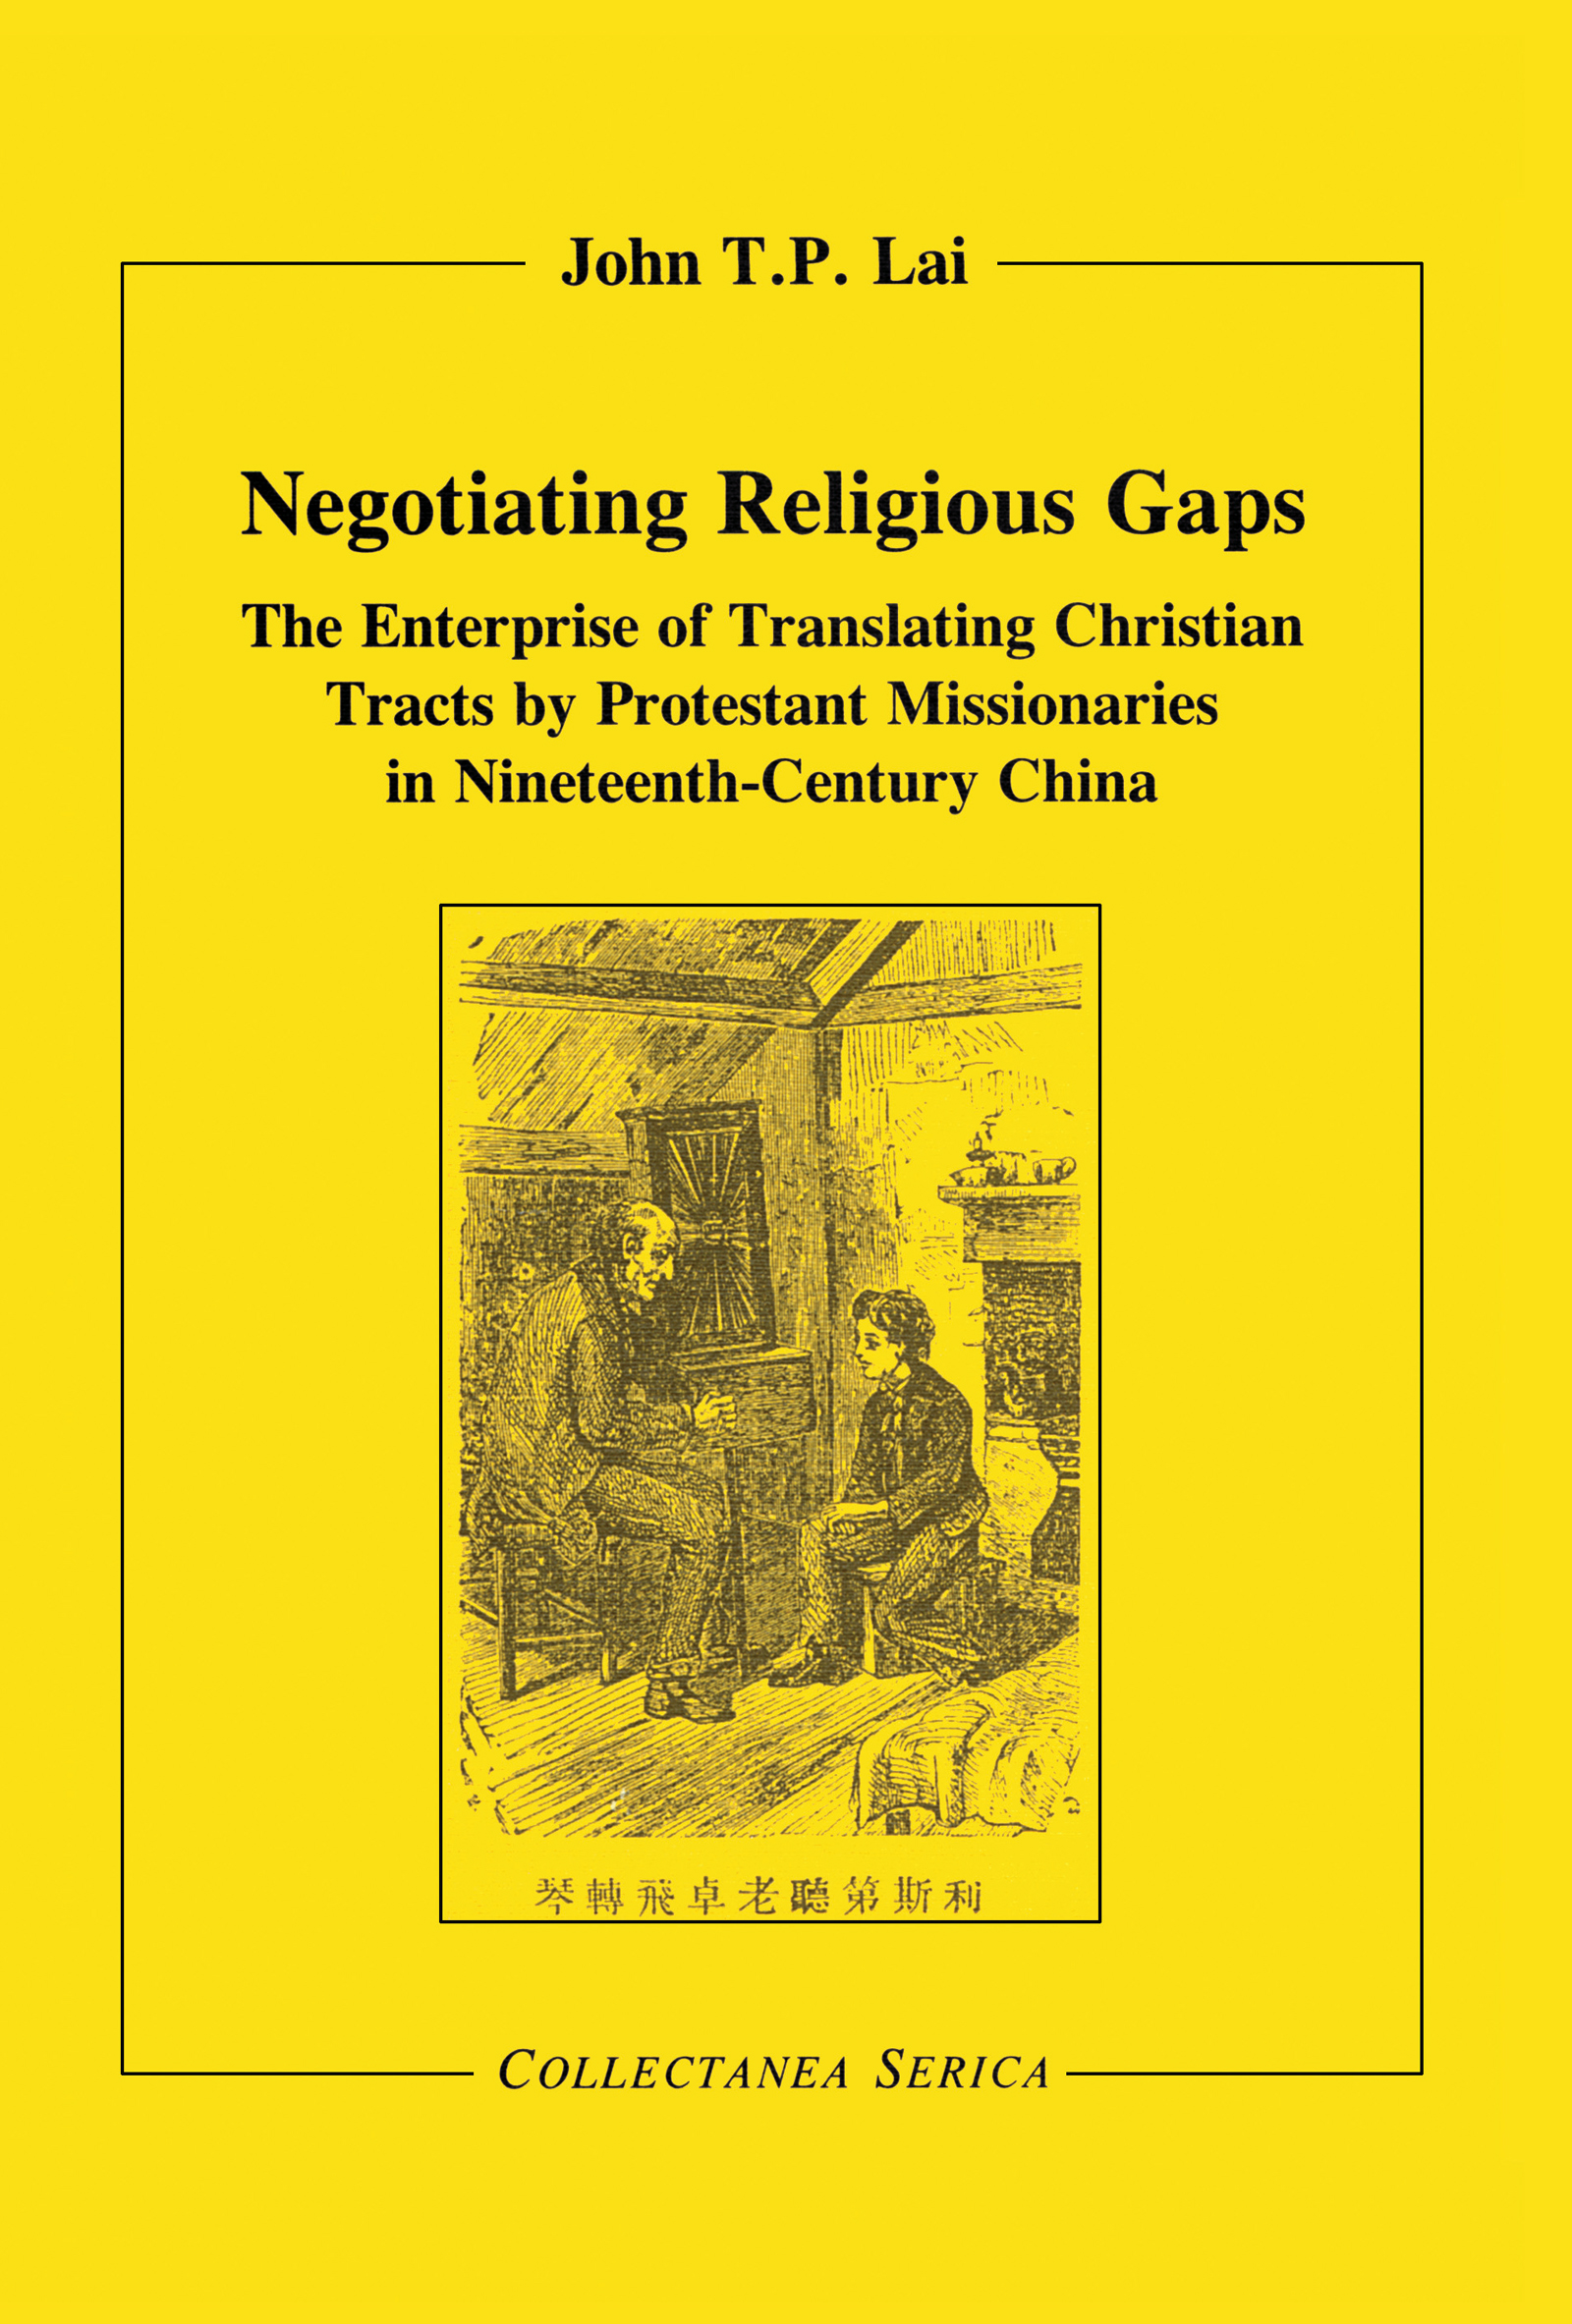 Negotiating Religious Gaps: The Enterprise of Translating Christian Tracts by Protestant Missionaries in Nineteenth-Century China book cover